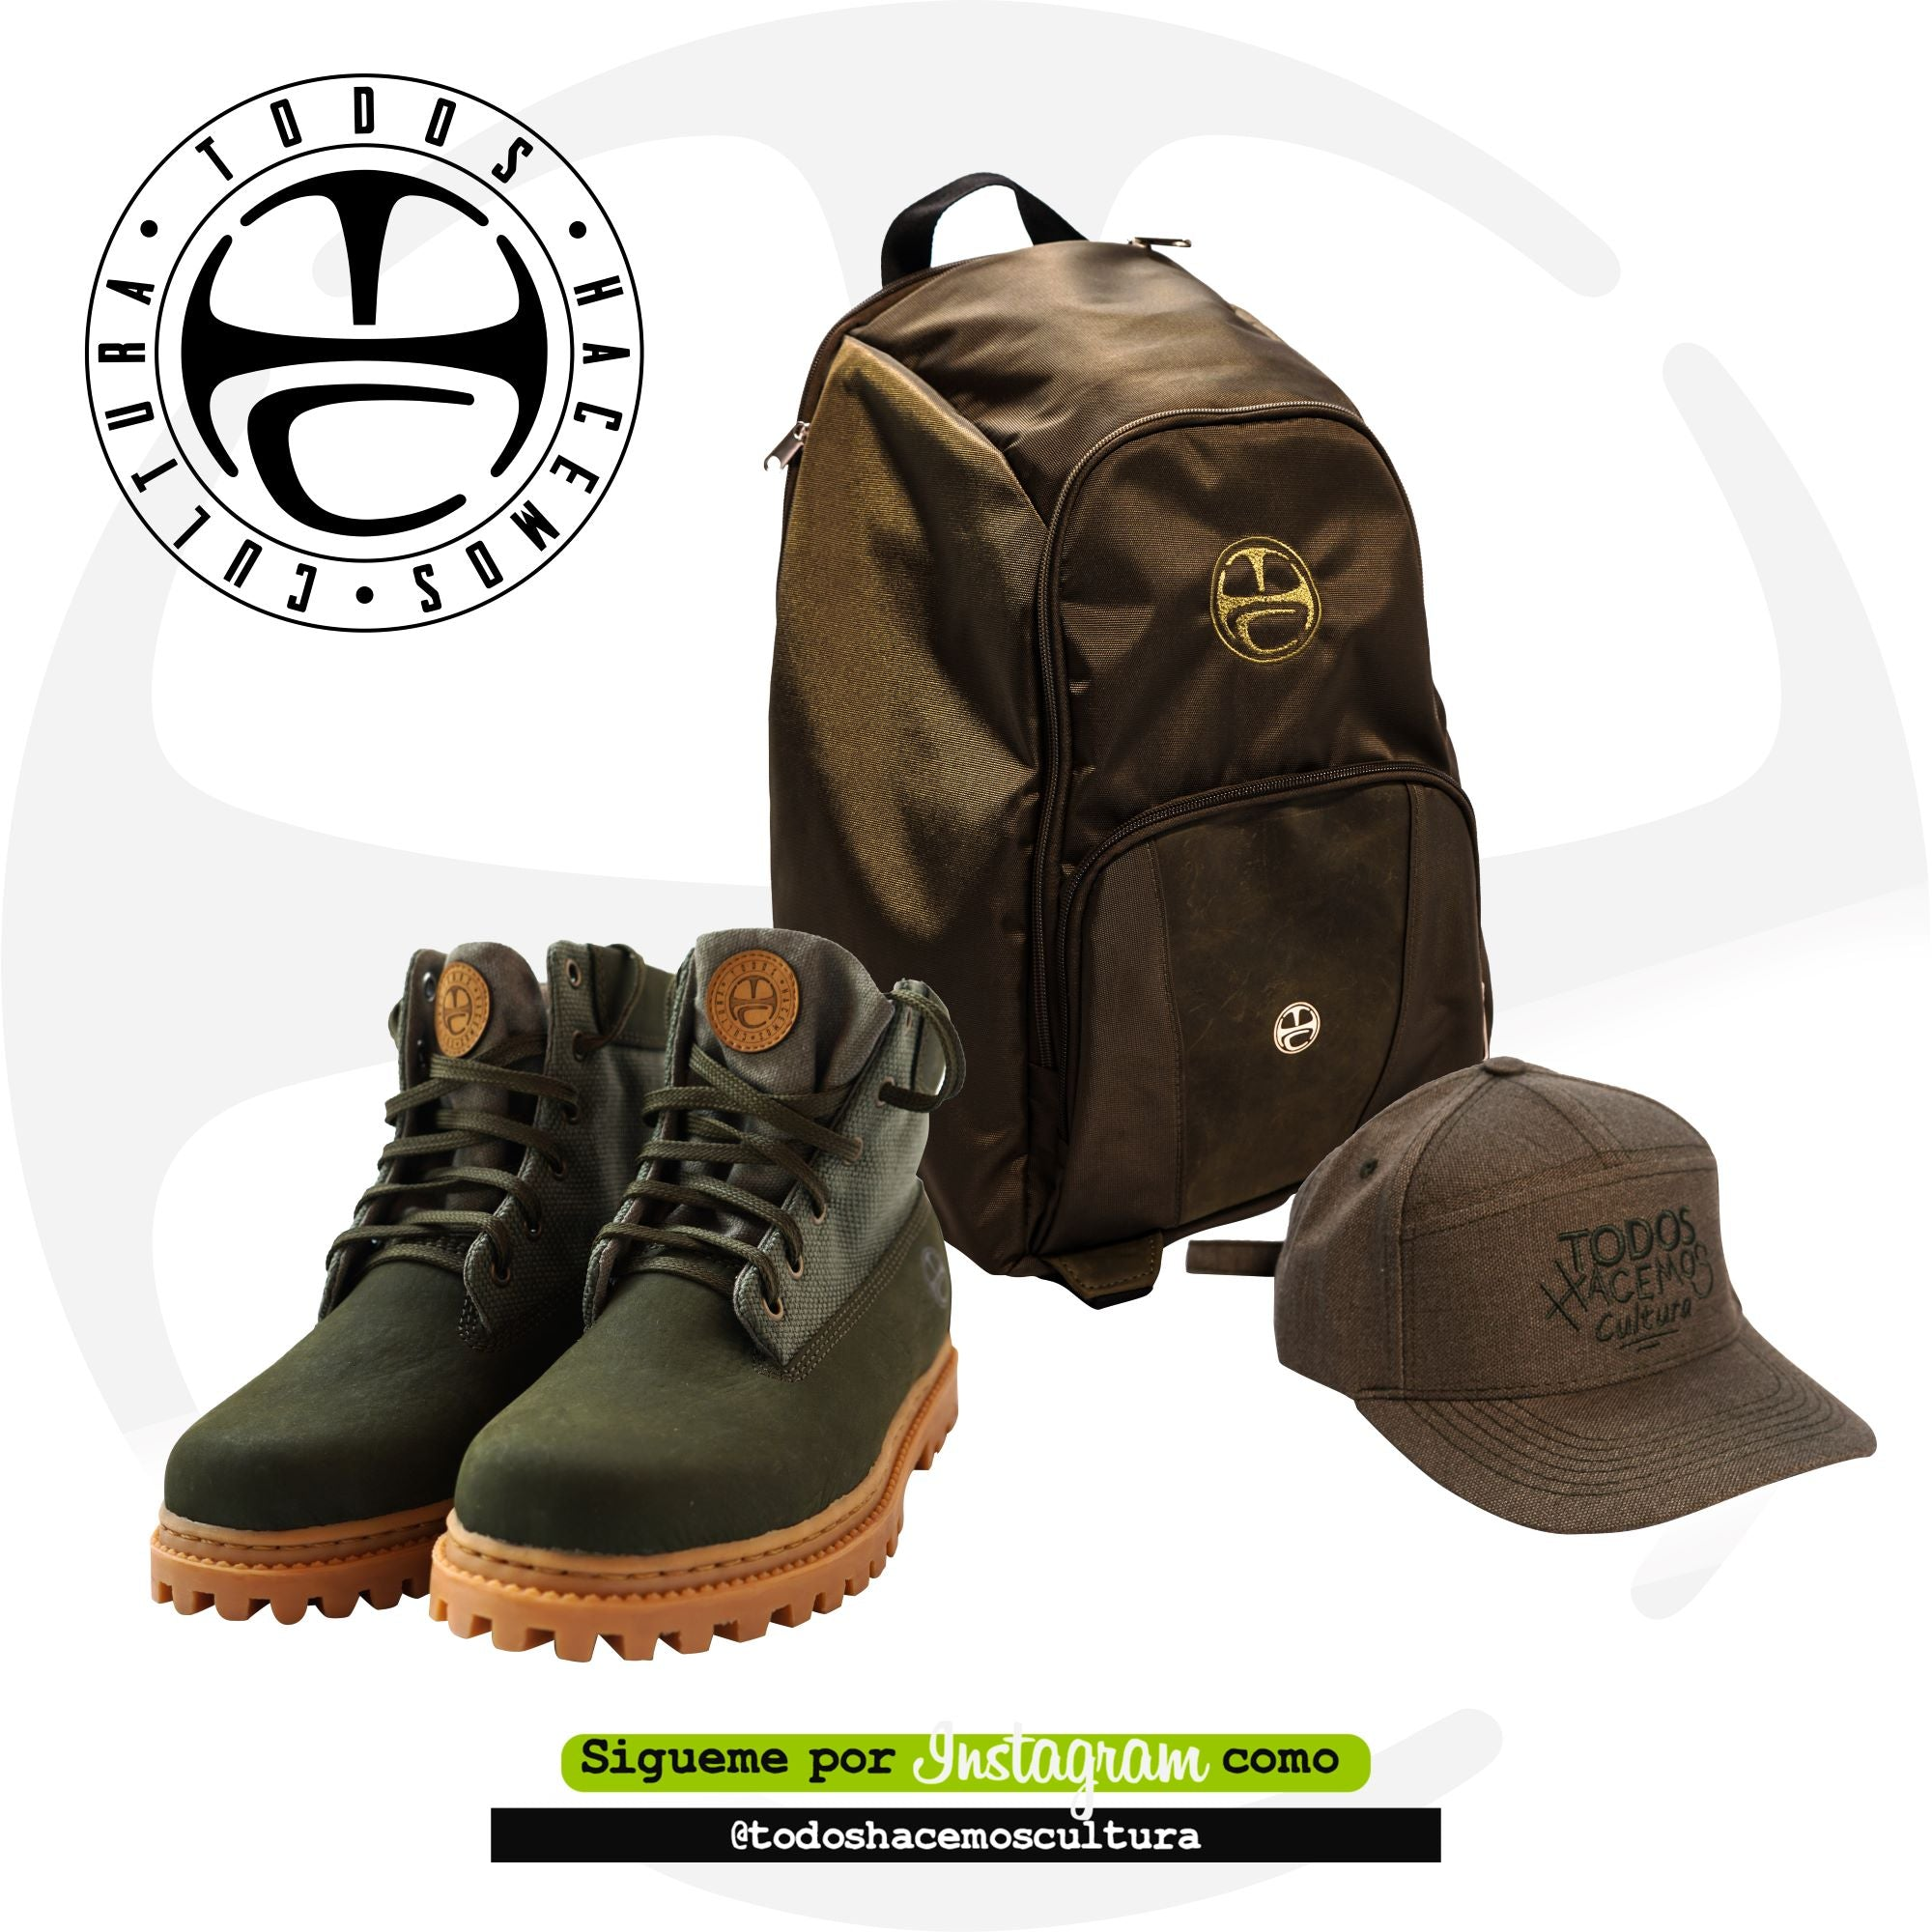 KIT 14L GREEN: MORRAL, BOTAS, GORRA